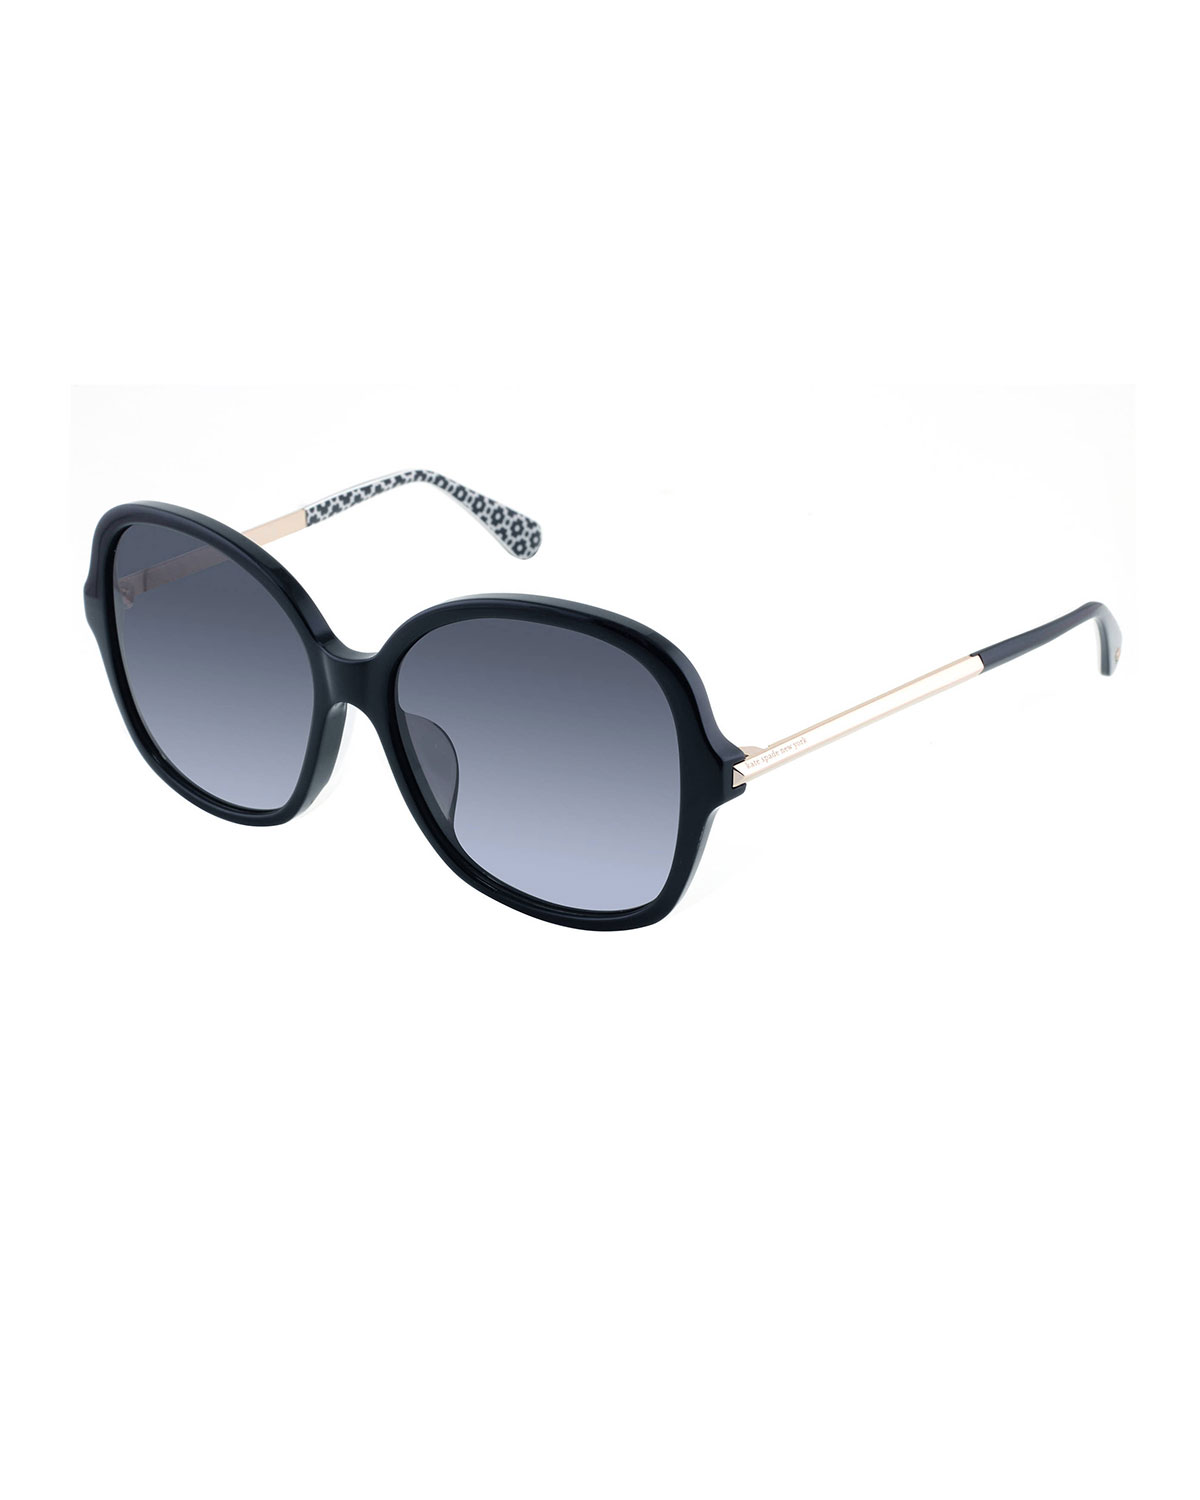 kate spade new york kaiyags square polarized sunglasses